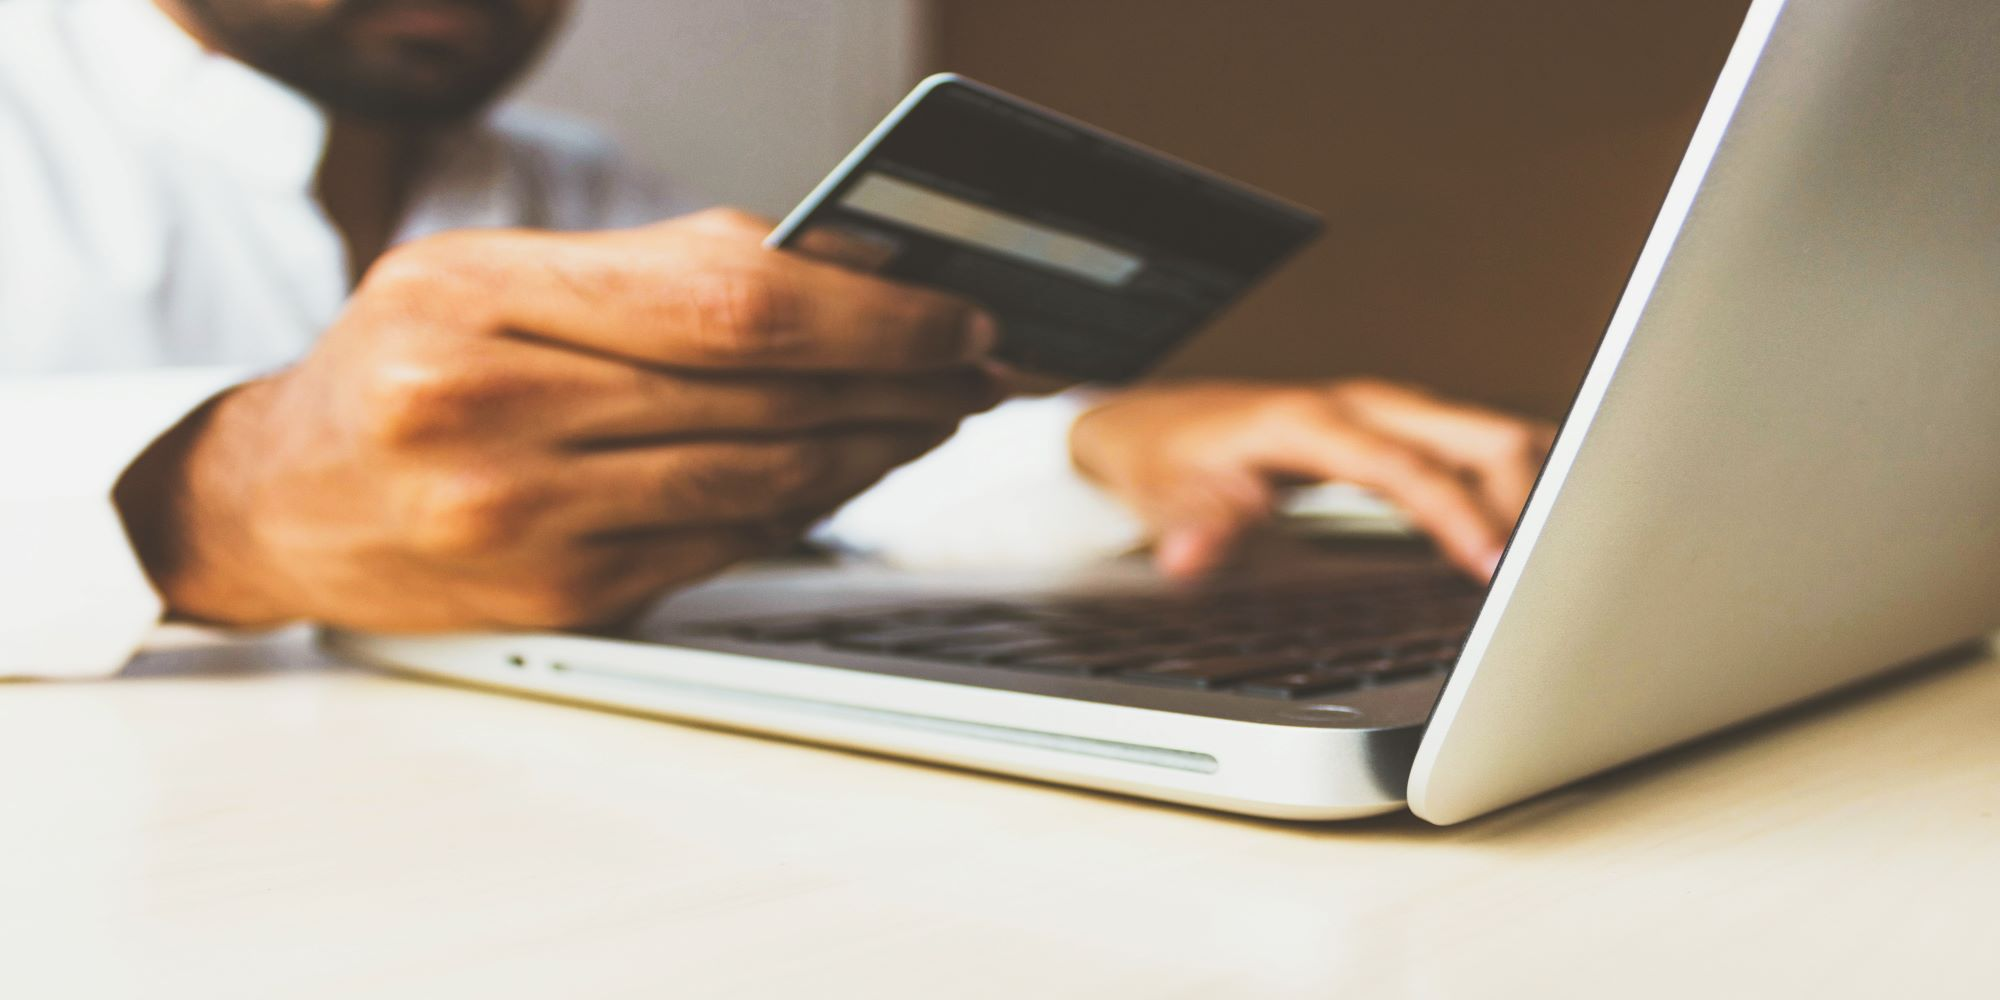 International Marketing News: The Impact of the Pandemic on eCommerce